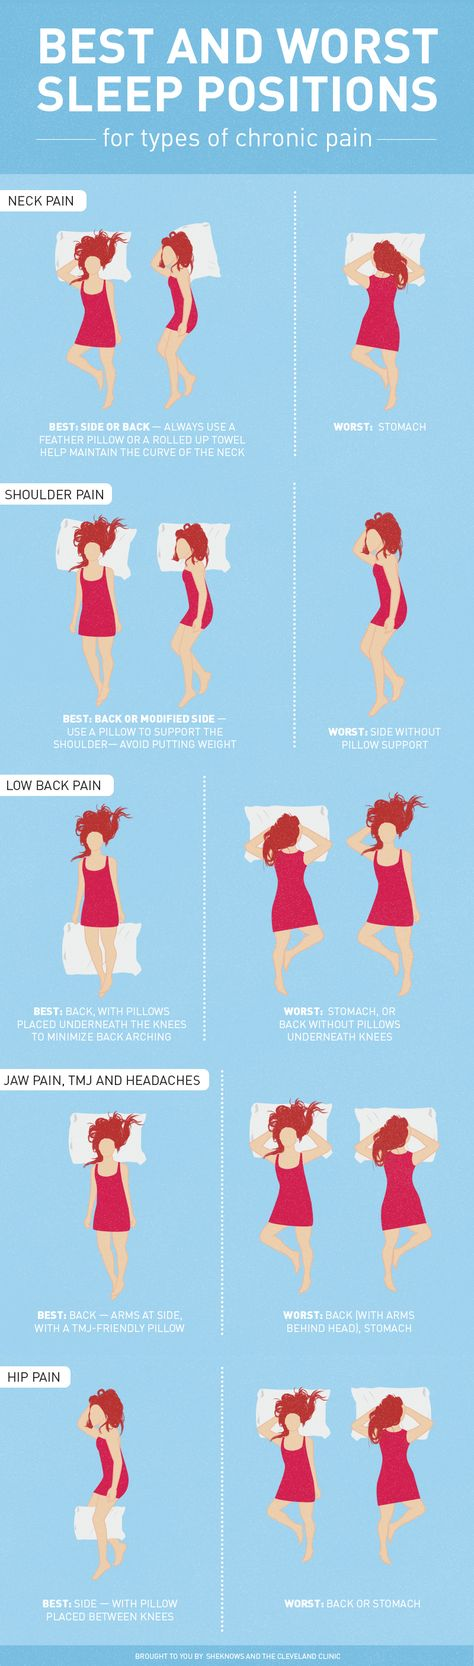 Your preferred sleep position and pillow greatly influence your posture and chronic pain. If you have neck, shoulder, back, or other pains—or want to avoid them...